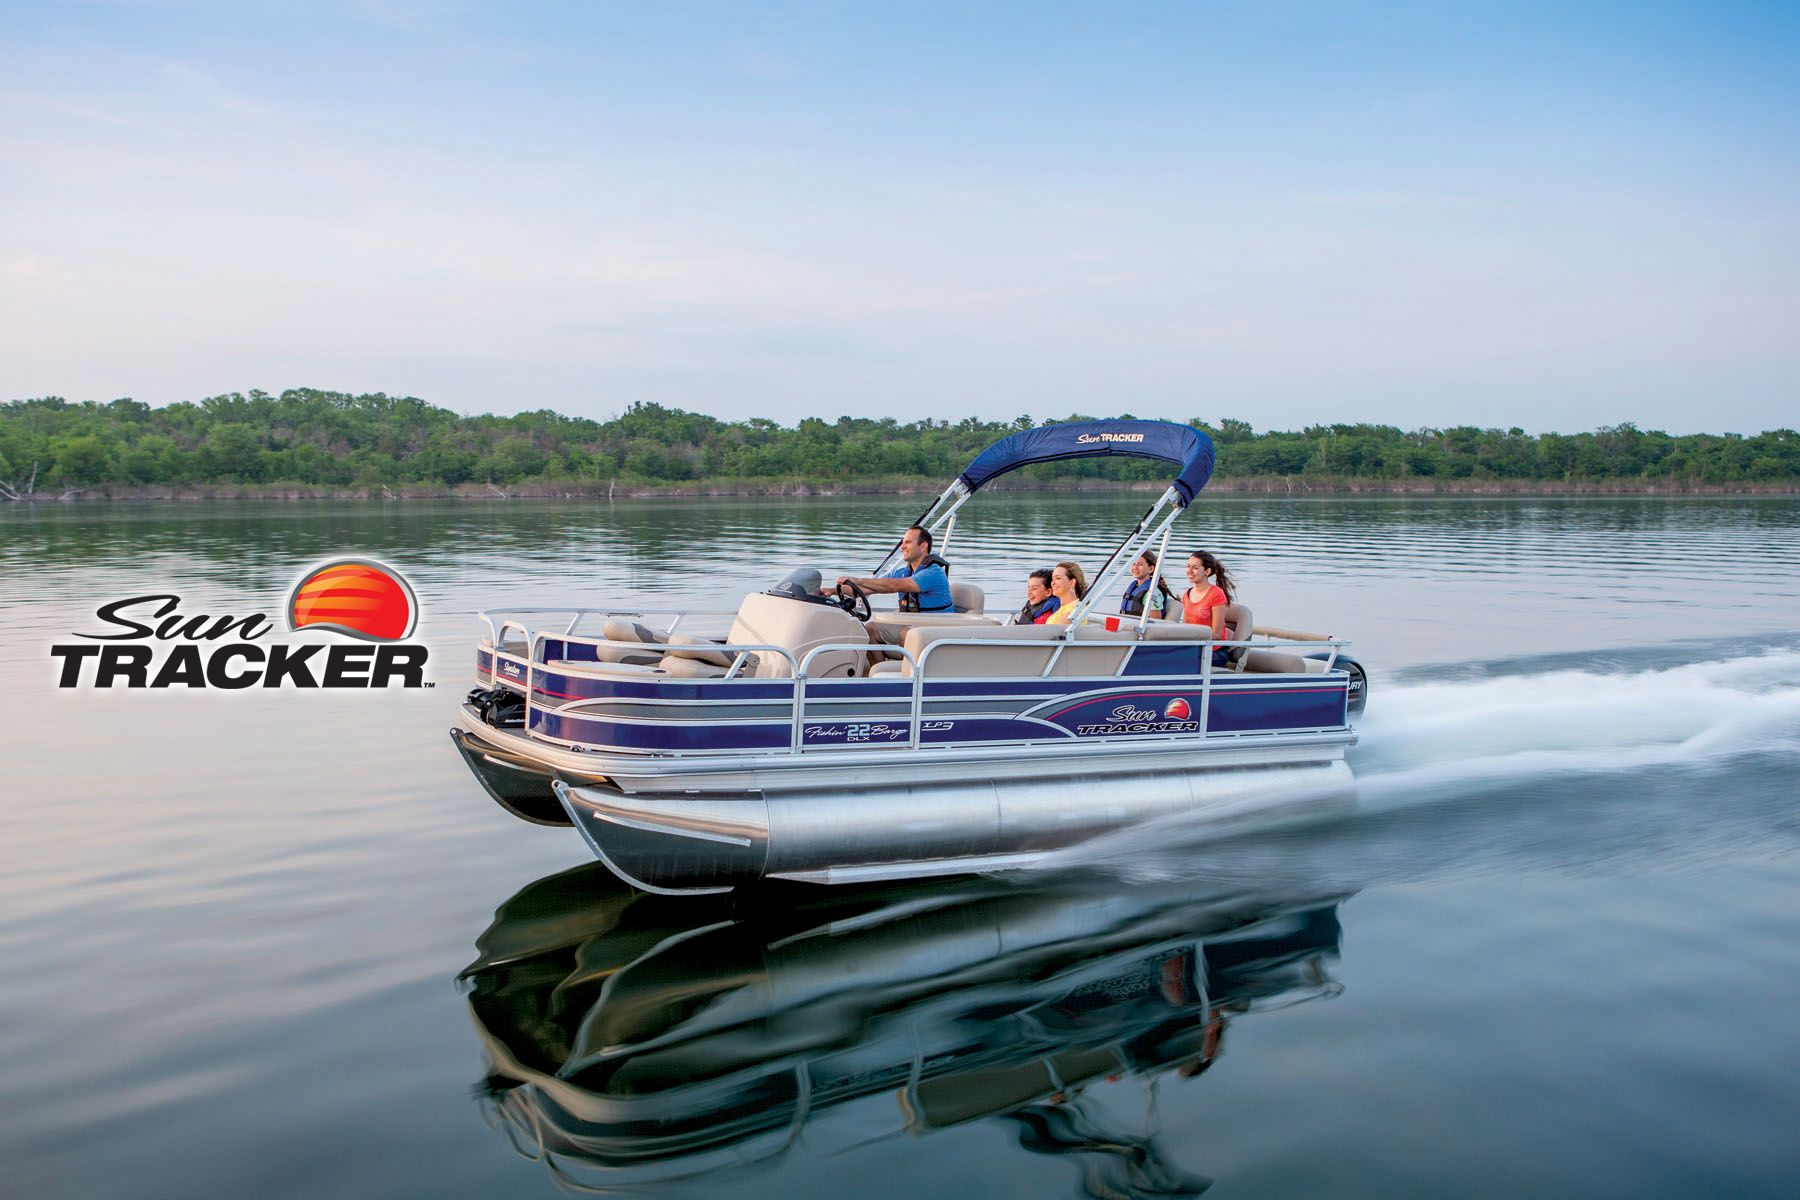 The standard Mercury 90HP ELPT can be upgraded to a 150HP